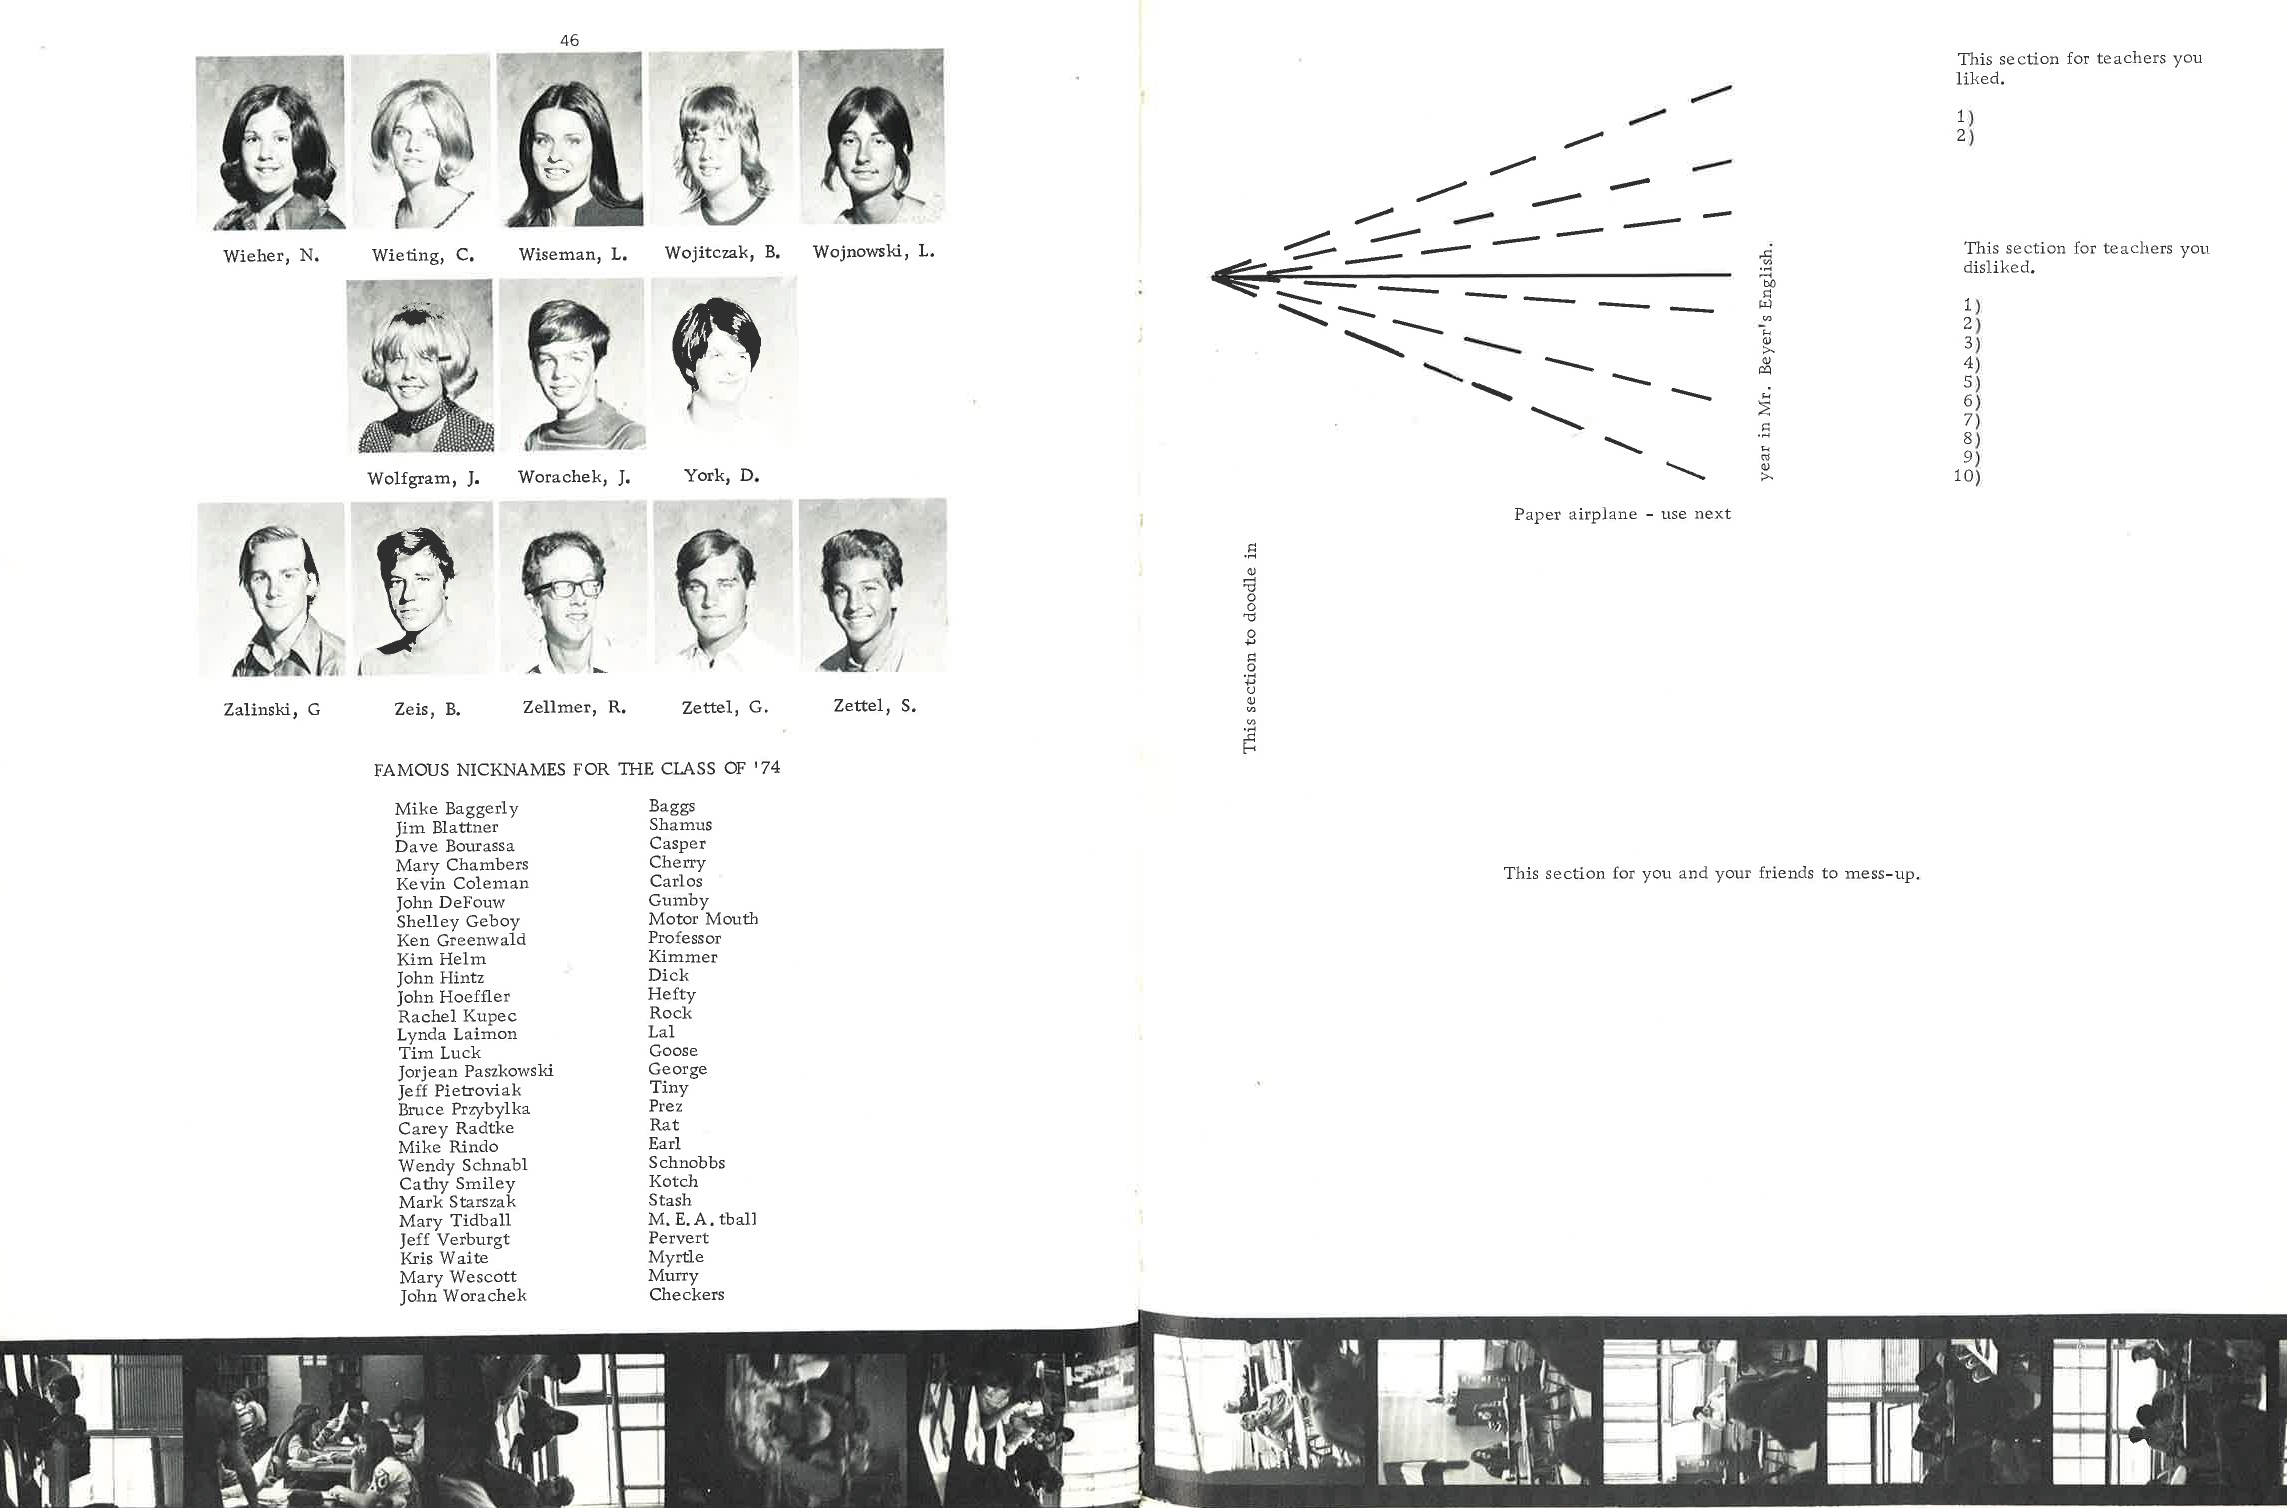 1972_Yearbook_46-47.jpg